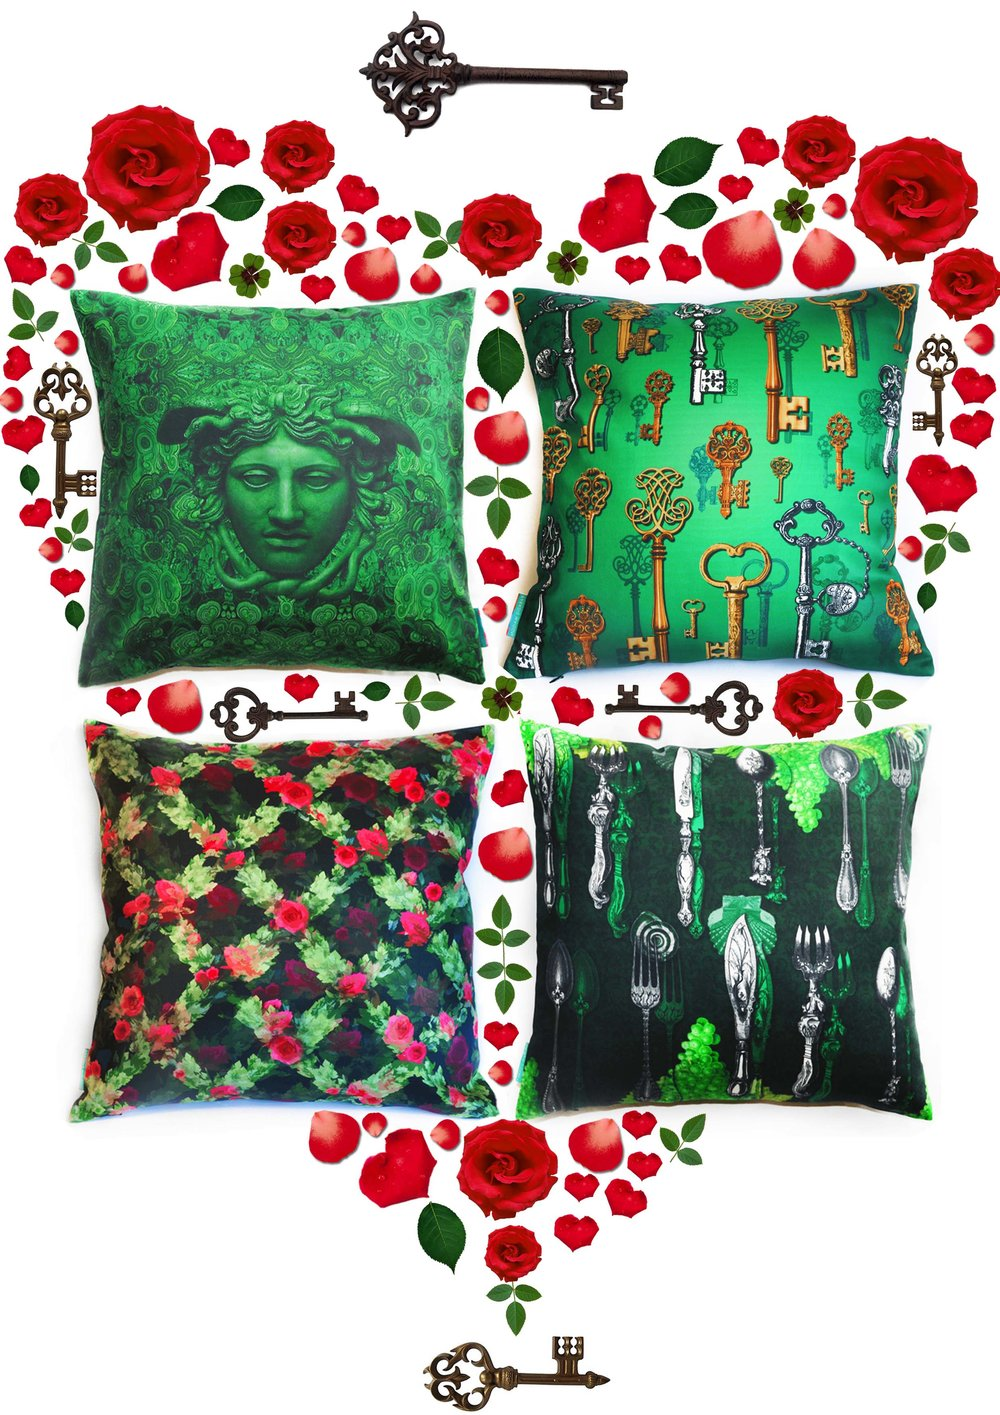 Throw Pillows Emerald Green Vintage, Shabby Chic Pillows, Rose Motif